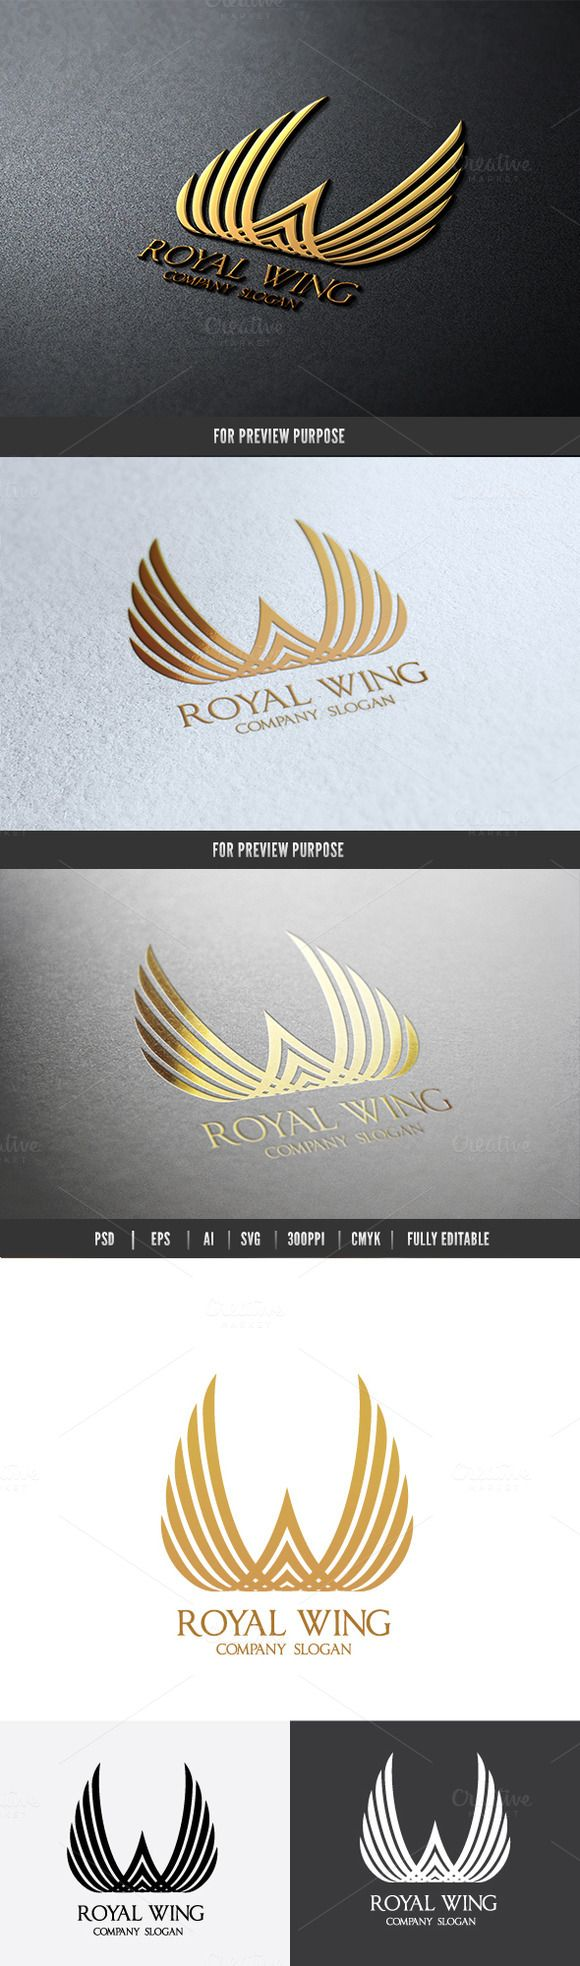 Royal Wing by Super Pig Shop on Creative Market